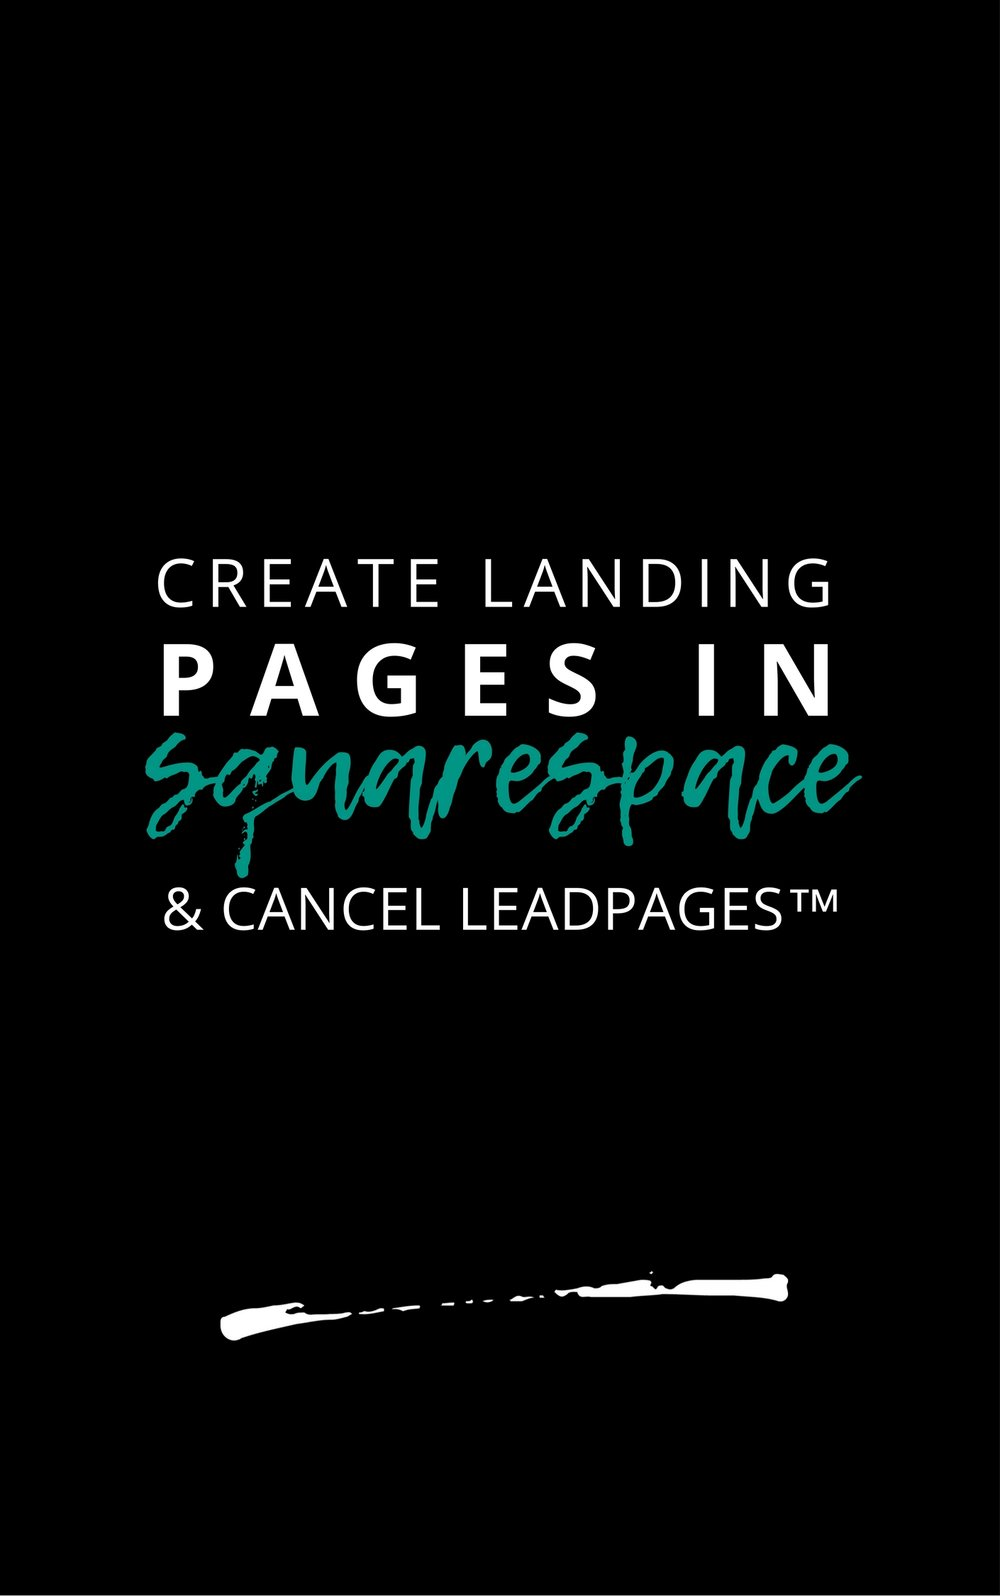 Learn How Simple Squarespace Hacks To Create Landing Pages in Squarespace without Leadpages with Heydays Design.